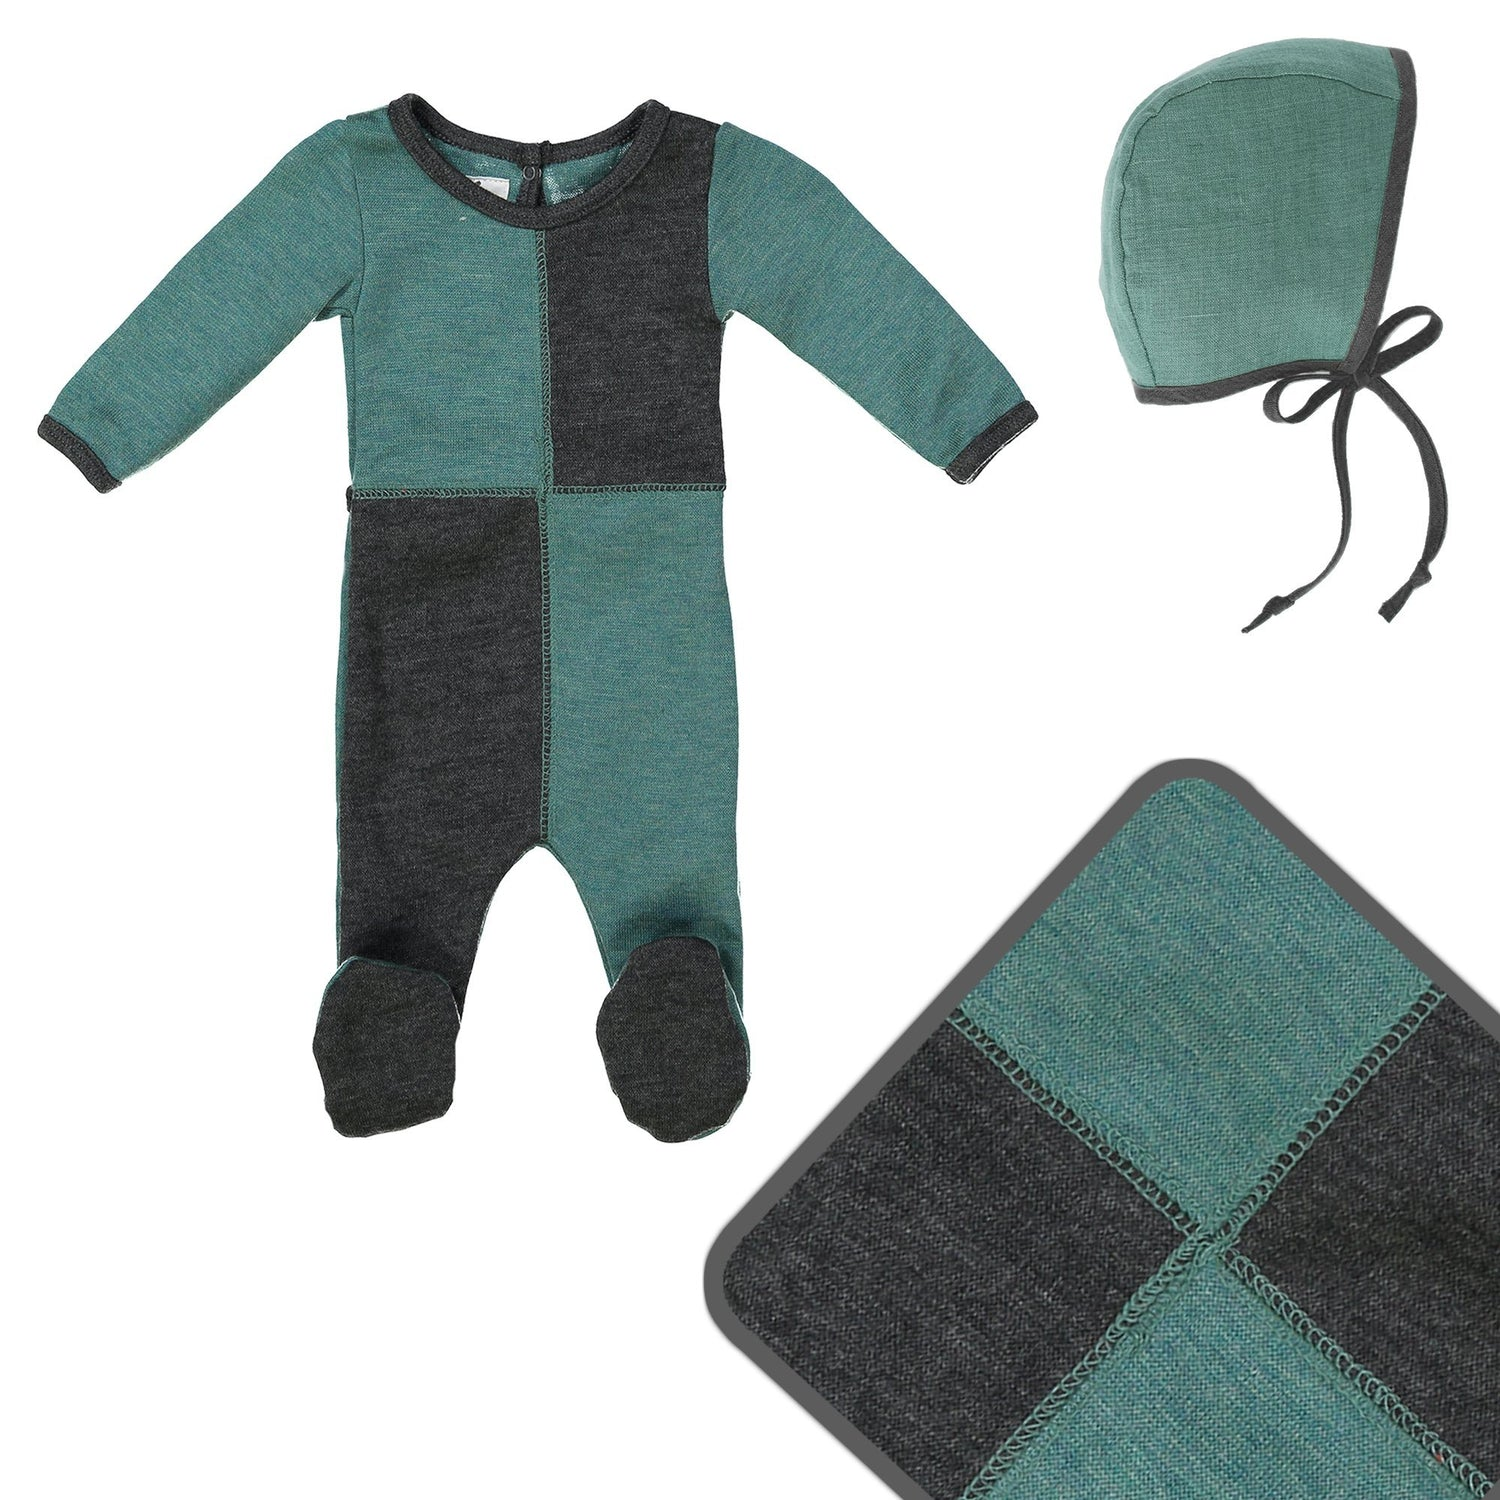 Sweater Block Cashmere Set Maniere Accessories 3 Months Teal